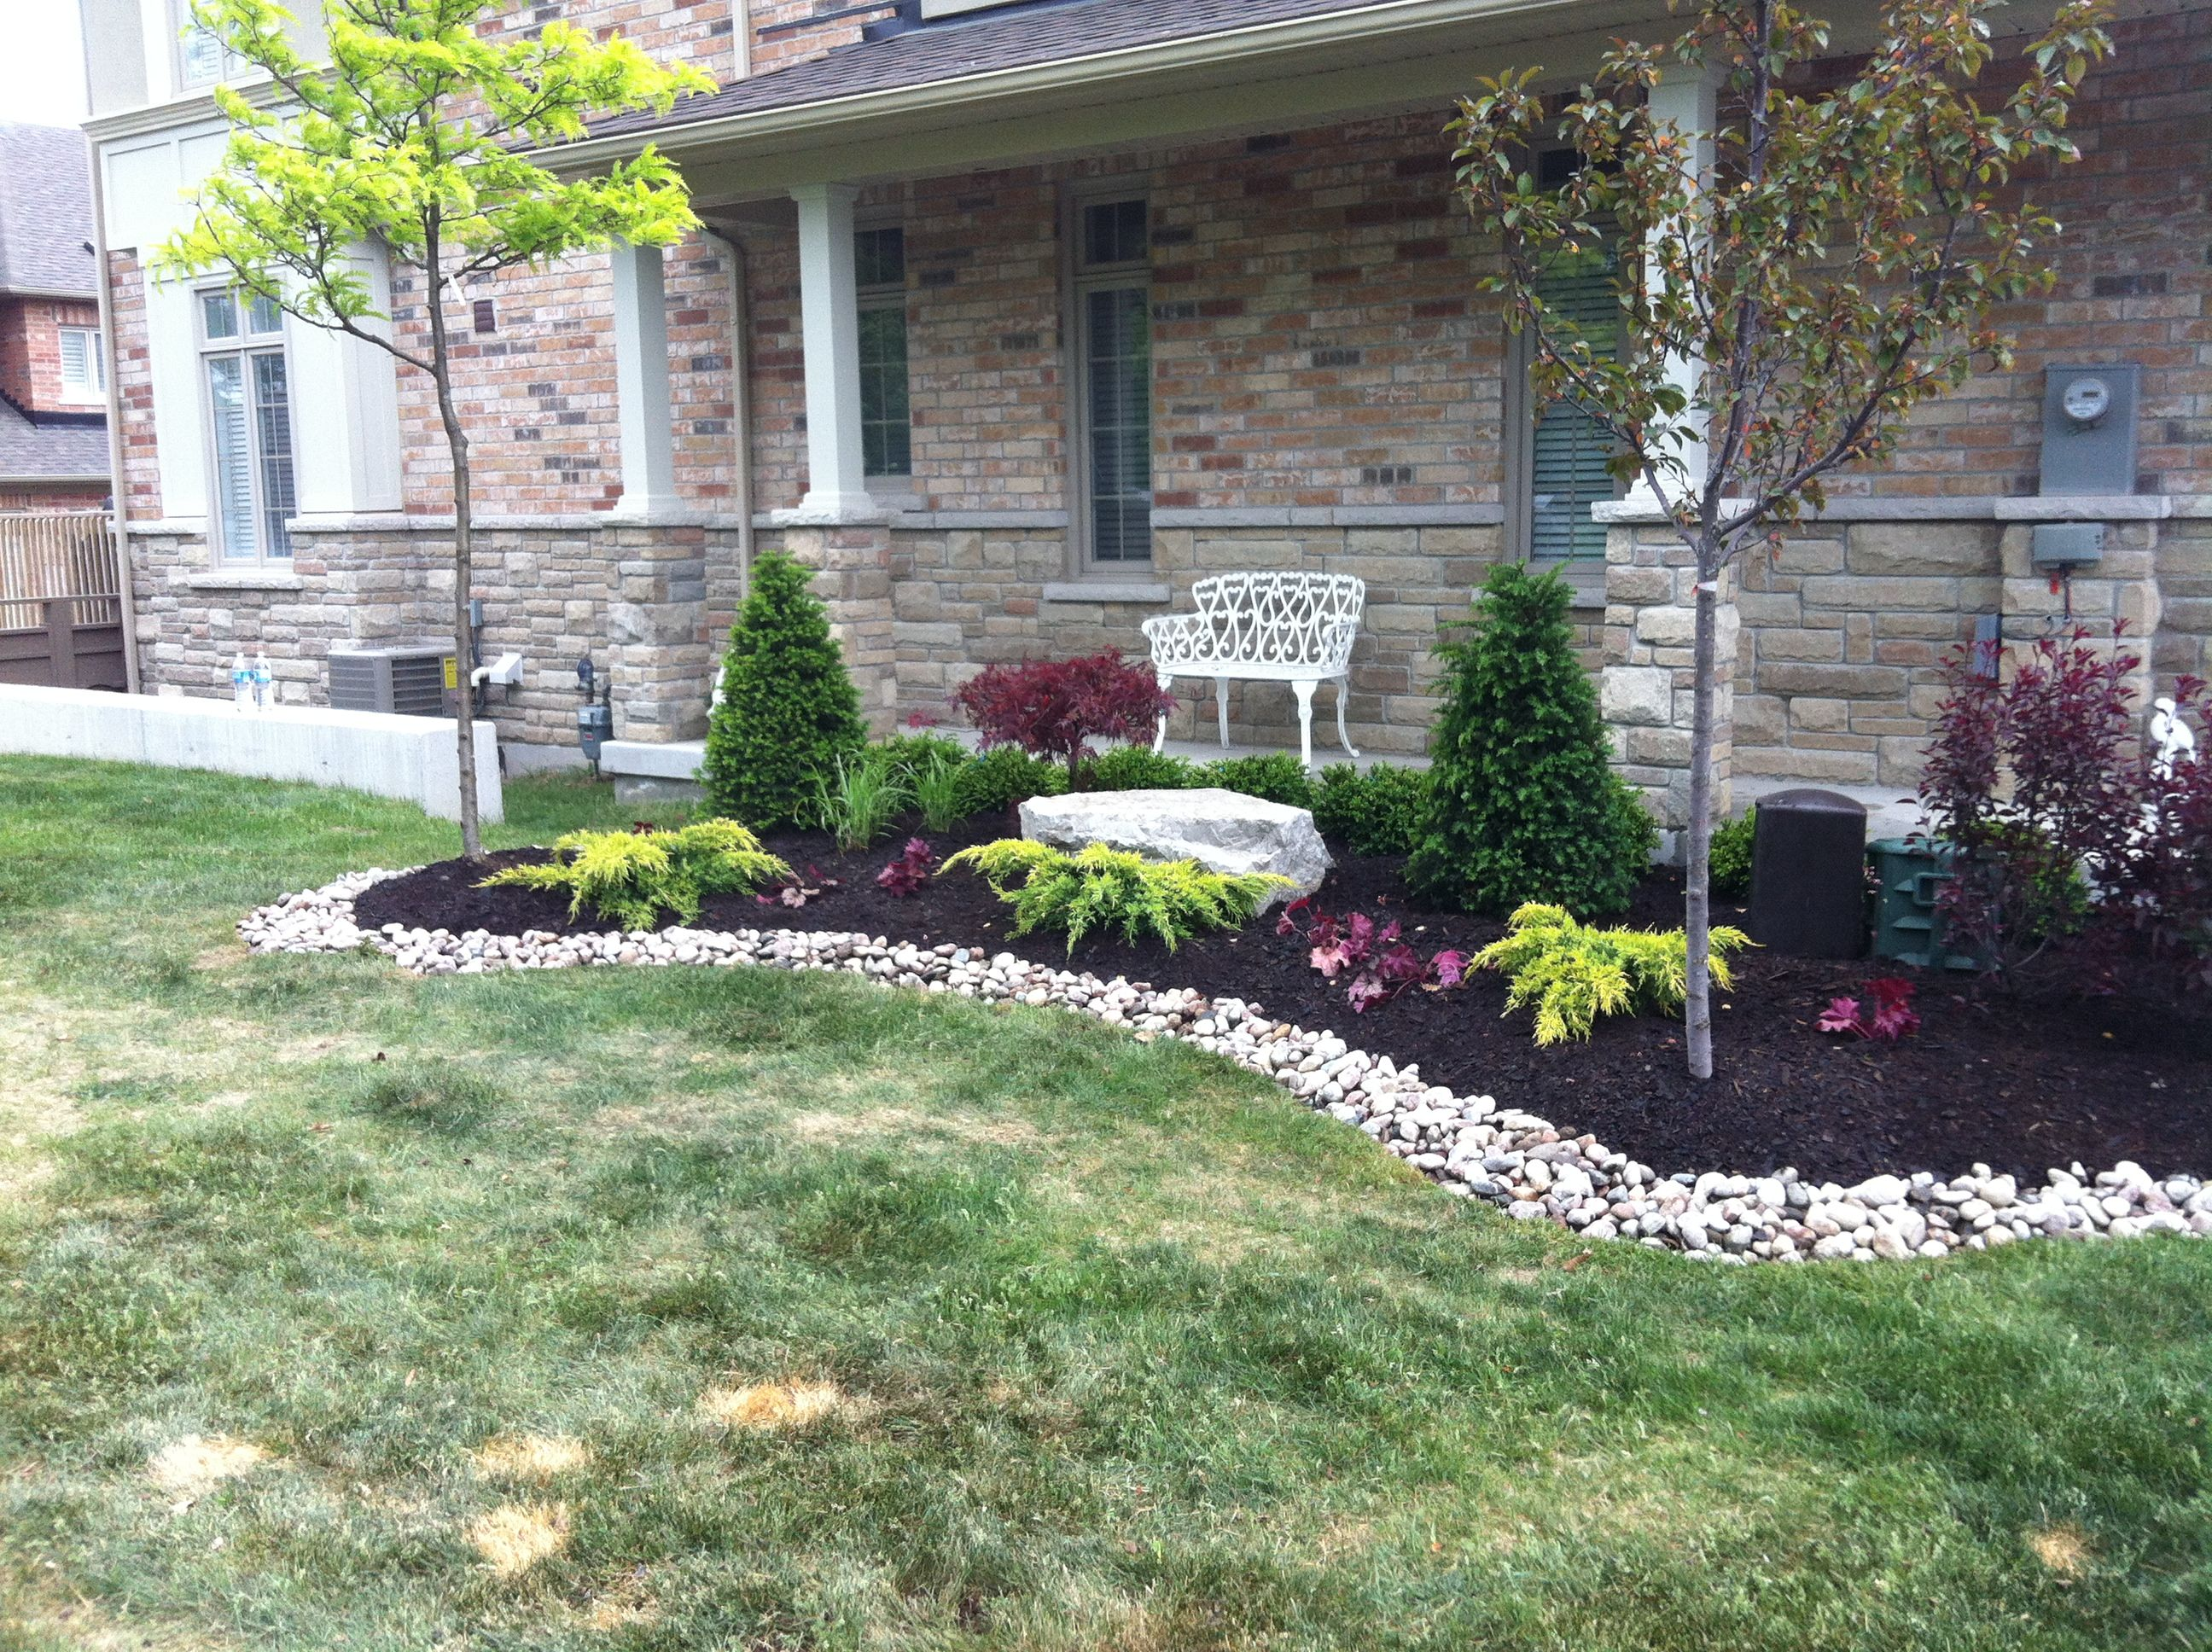 Low maintenance landscape design ideas low maintenance for Easy garden designs ideas